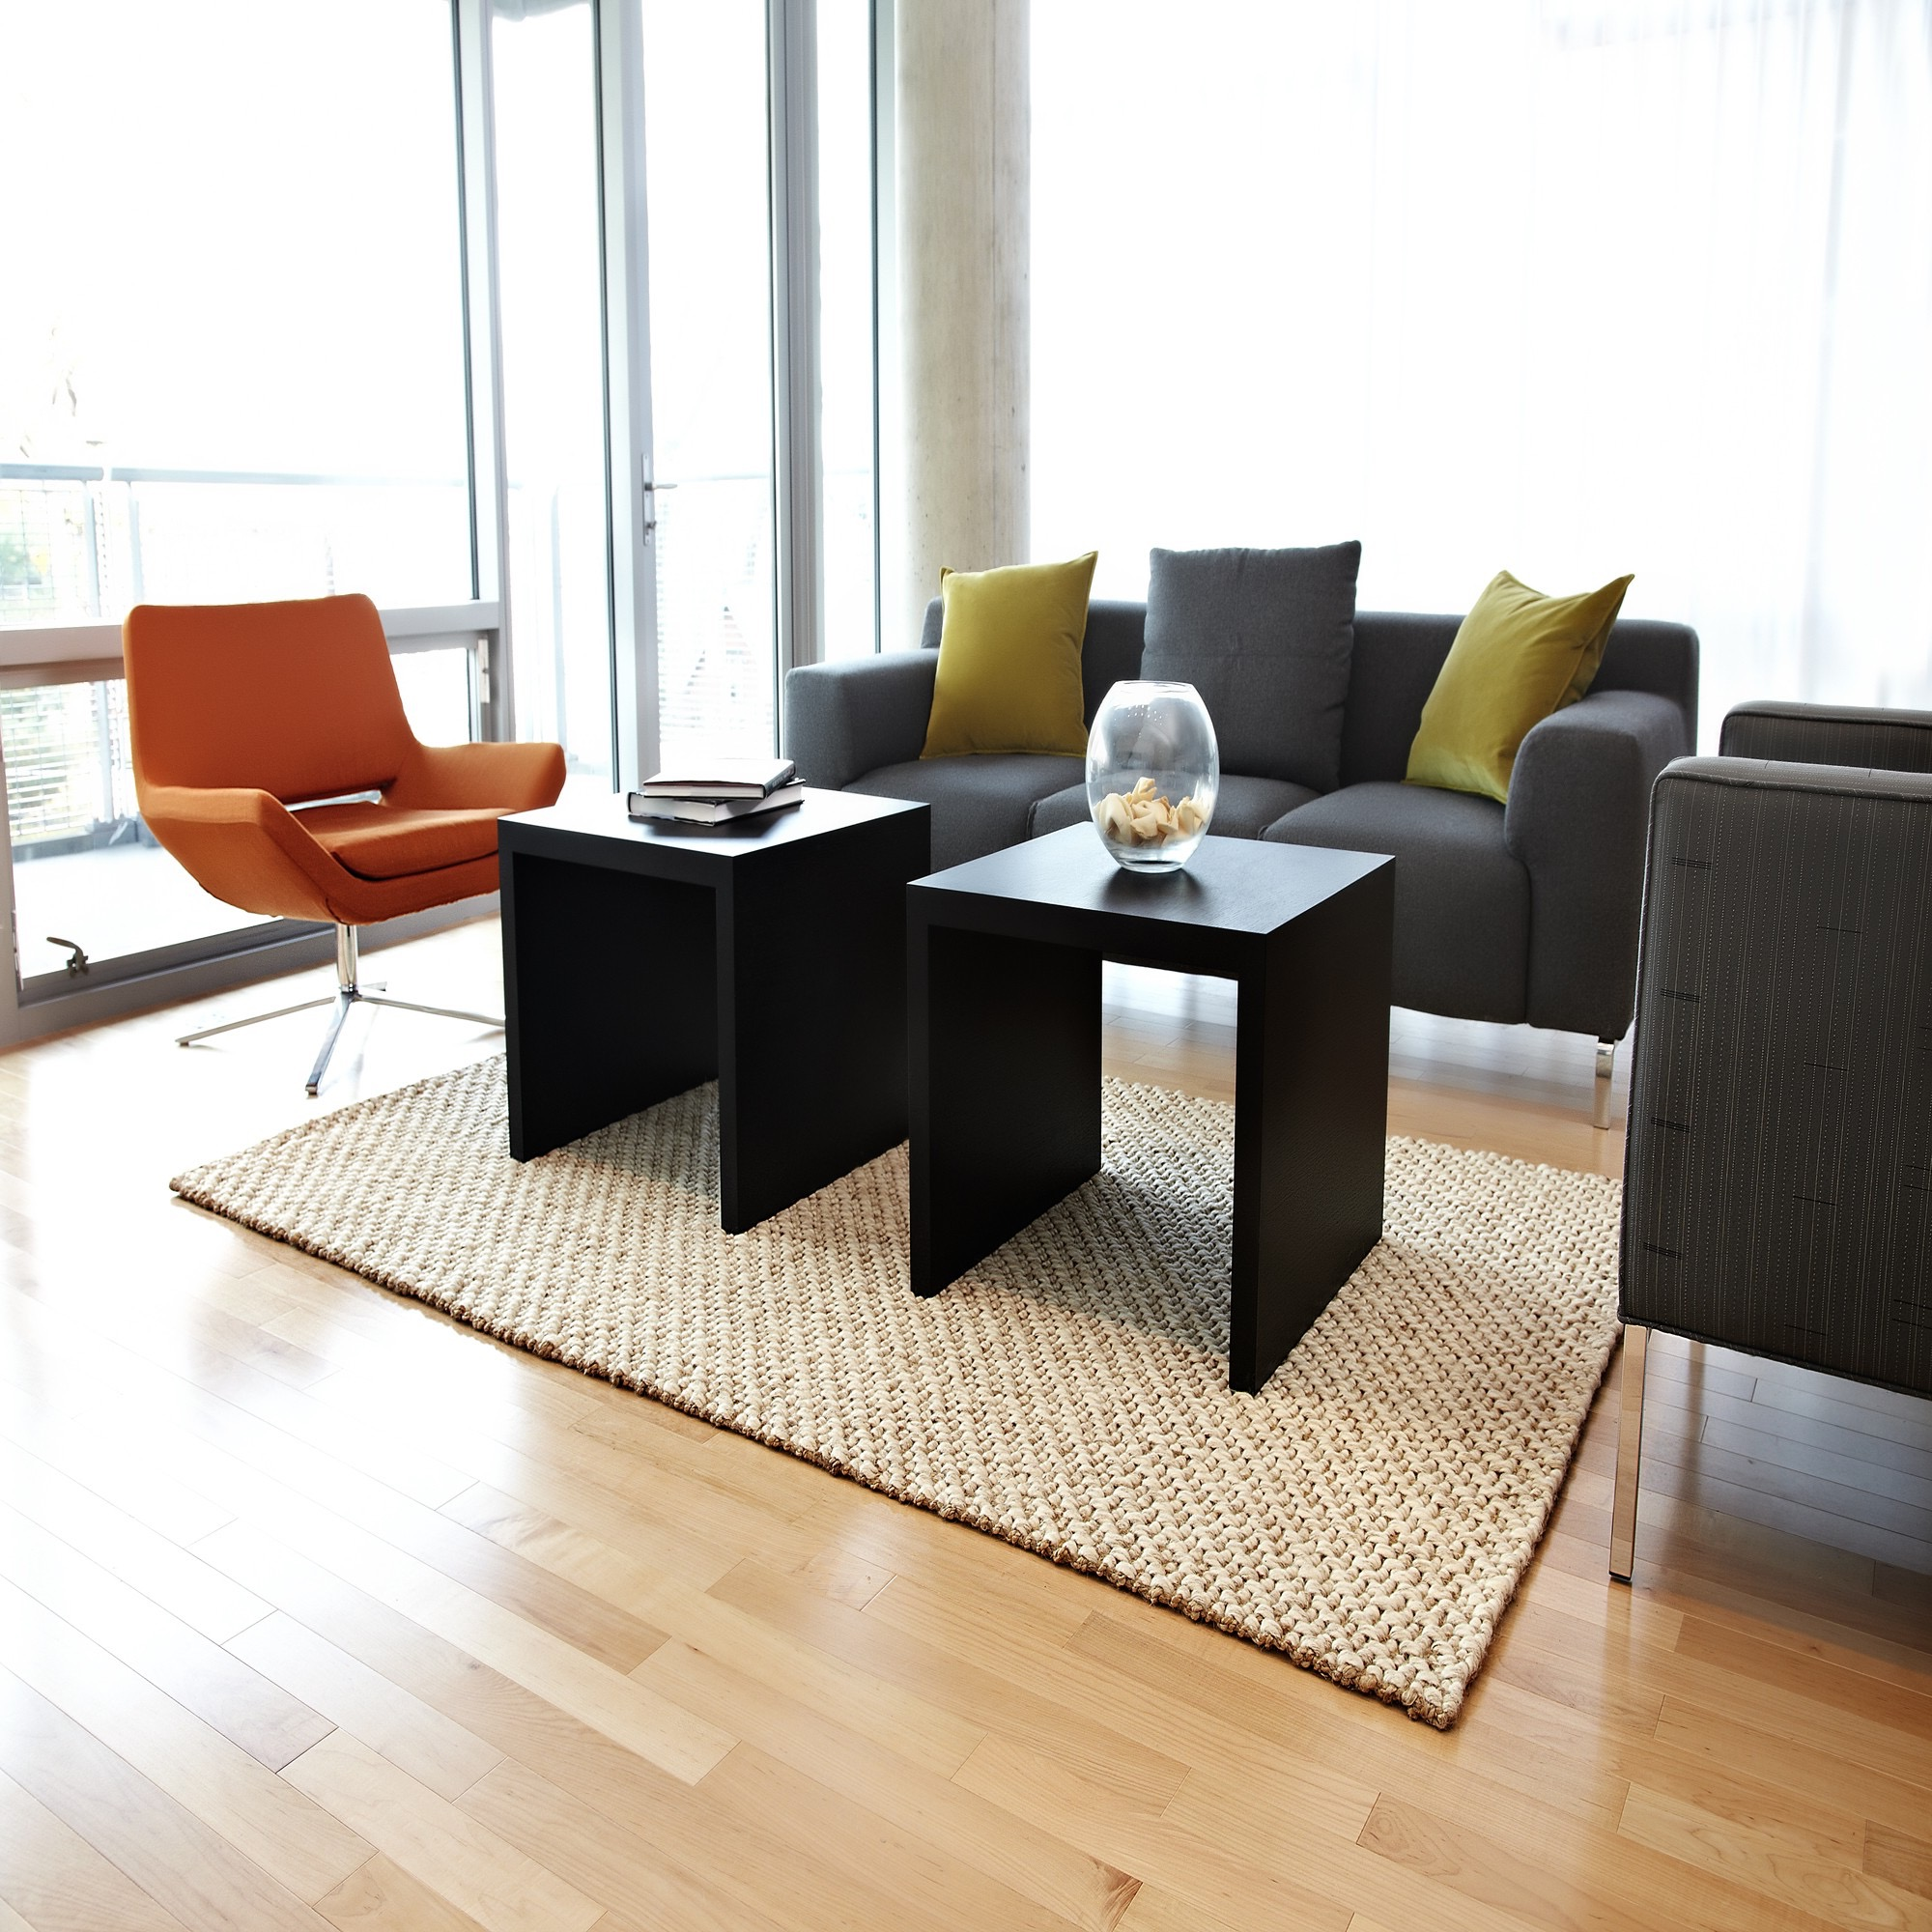 Modern Minimalist Apartment Living Room With Flat Chairs And Jute Braided Rug (Image 8 of 15)